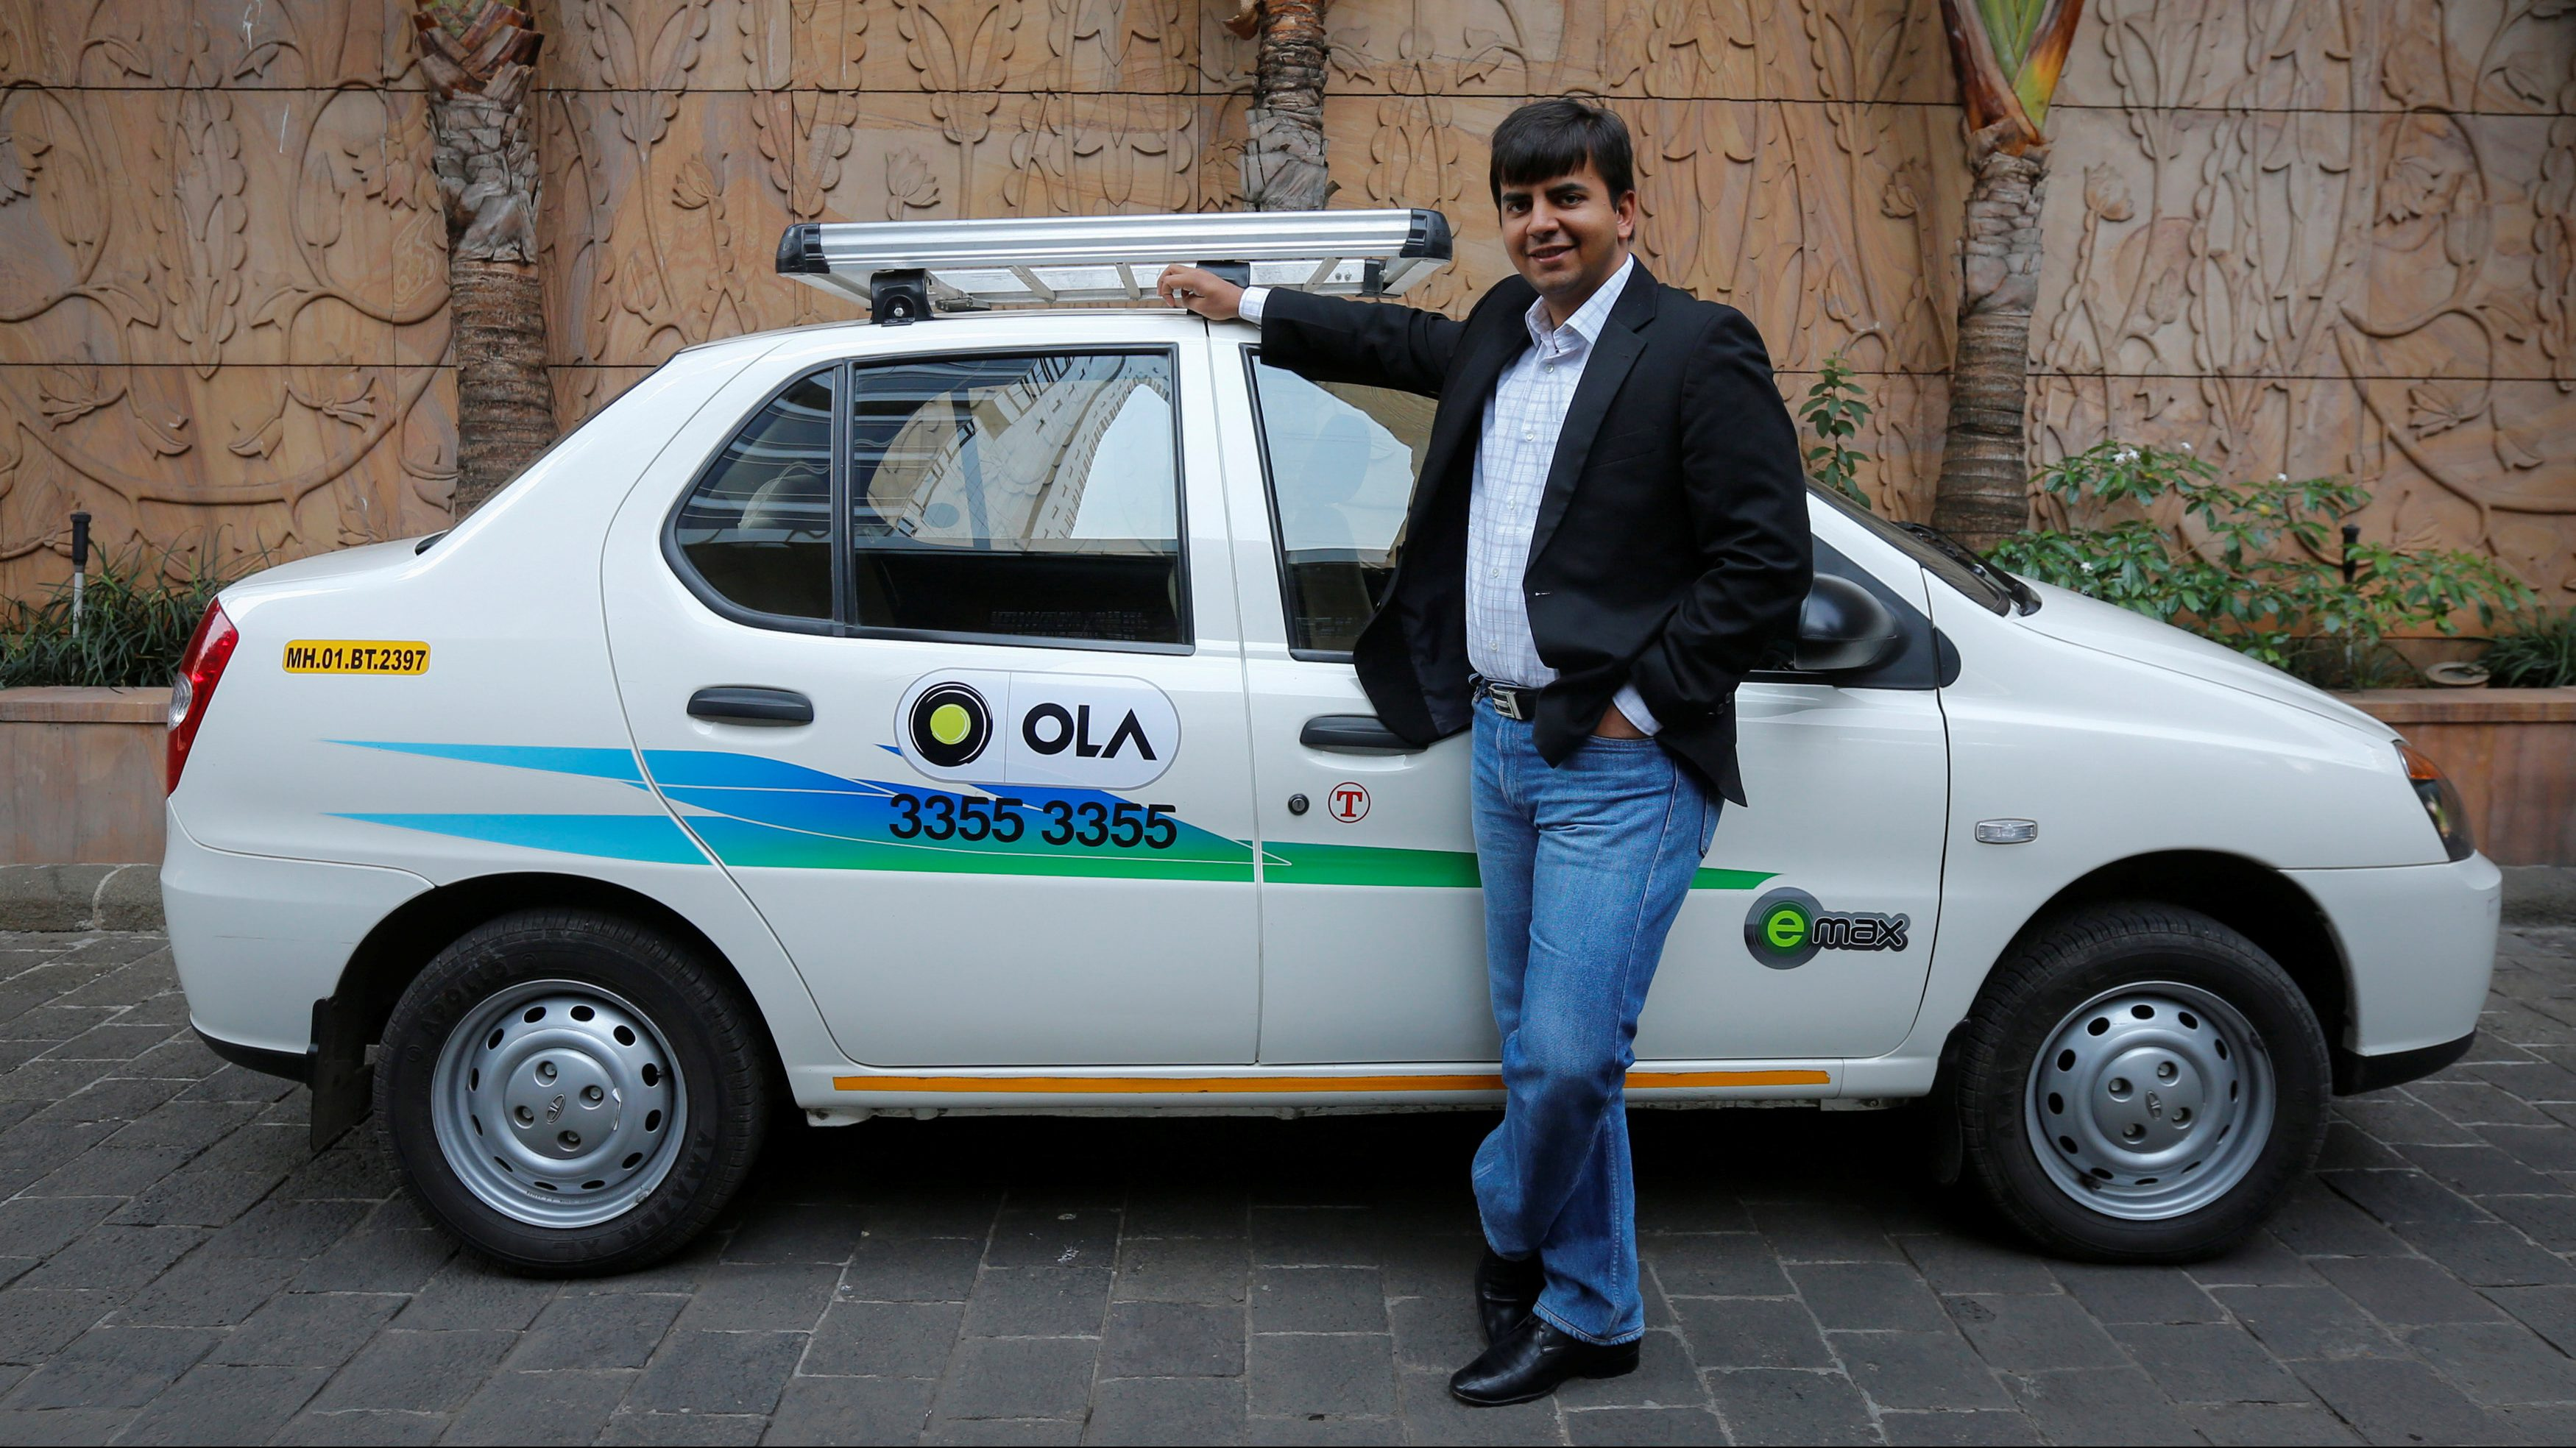 Bhavish Aggarwal, CEO and co-founder of Ola, an app-based cab service provider, poses in front of an Ola cab in Mumbai March 3, 2015. REUTERS/Shailesh Andrade/File Photo - S1BETUIMCIAA